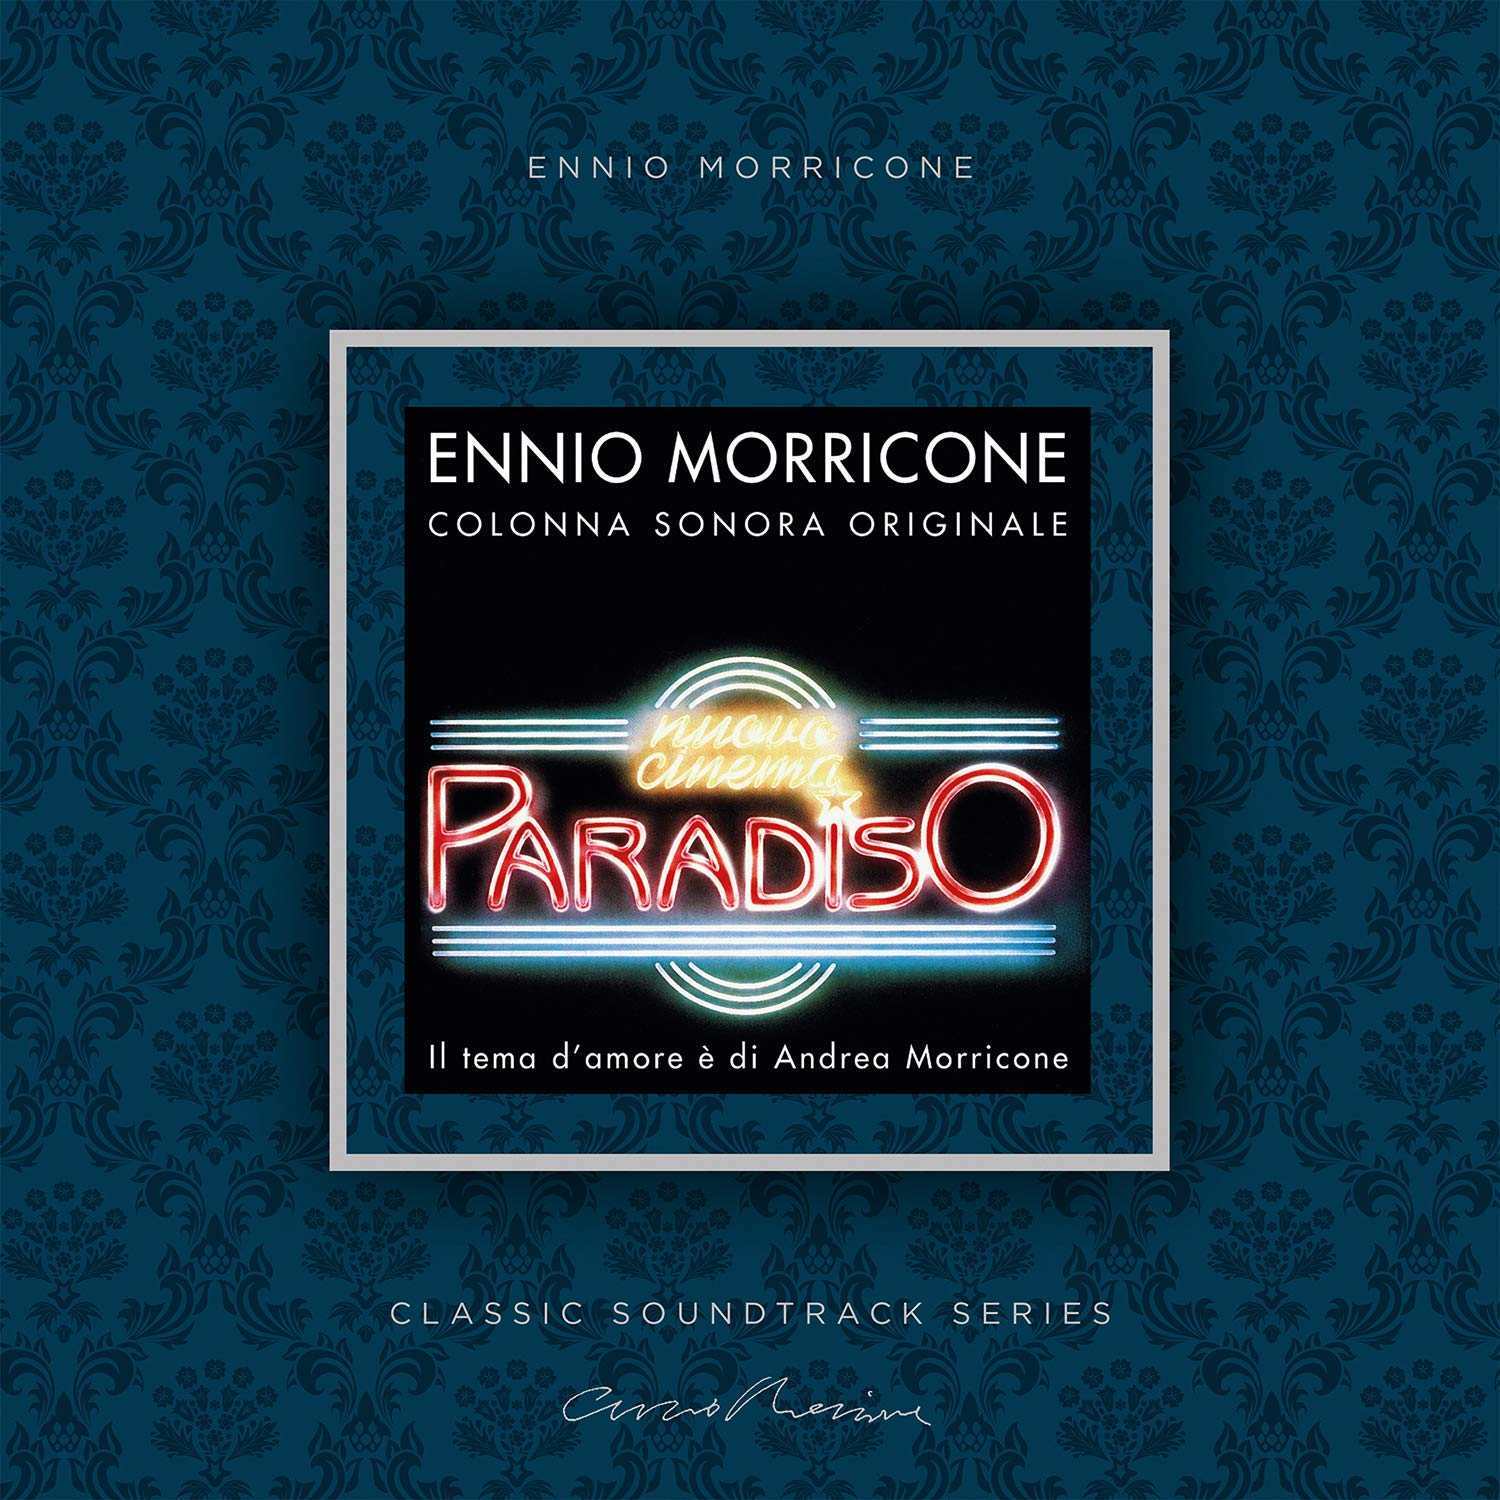 Ennio Morricone - Nuovo Cinema Paradiso (Original Motion Picture Soundtrack) [Limited Edition Transparent Pink LP]